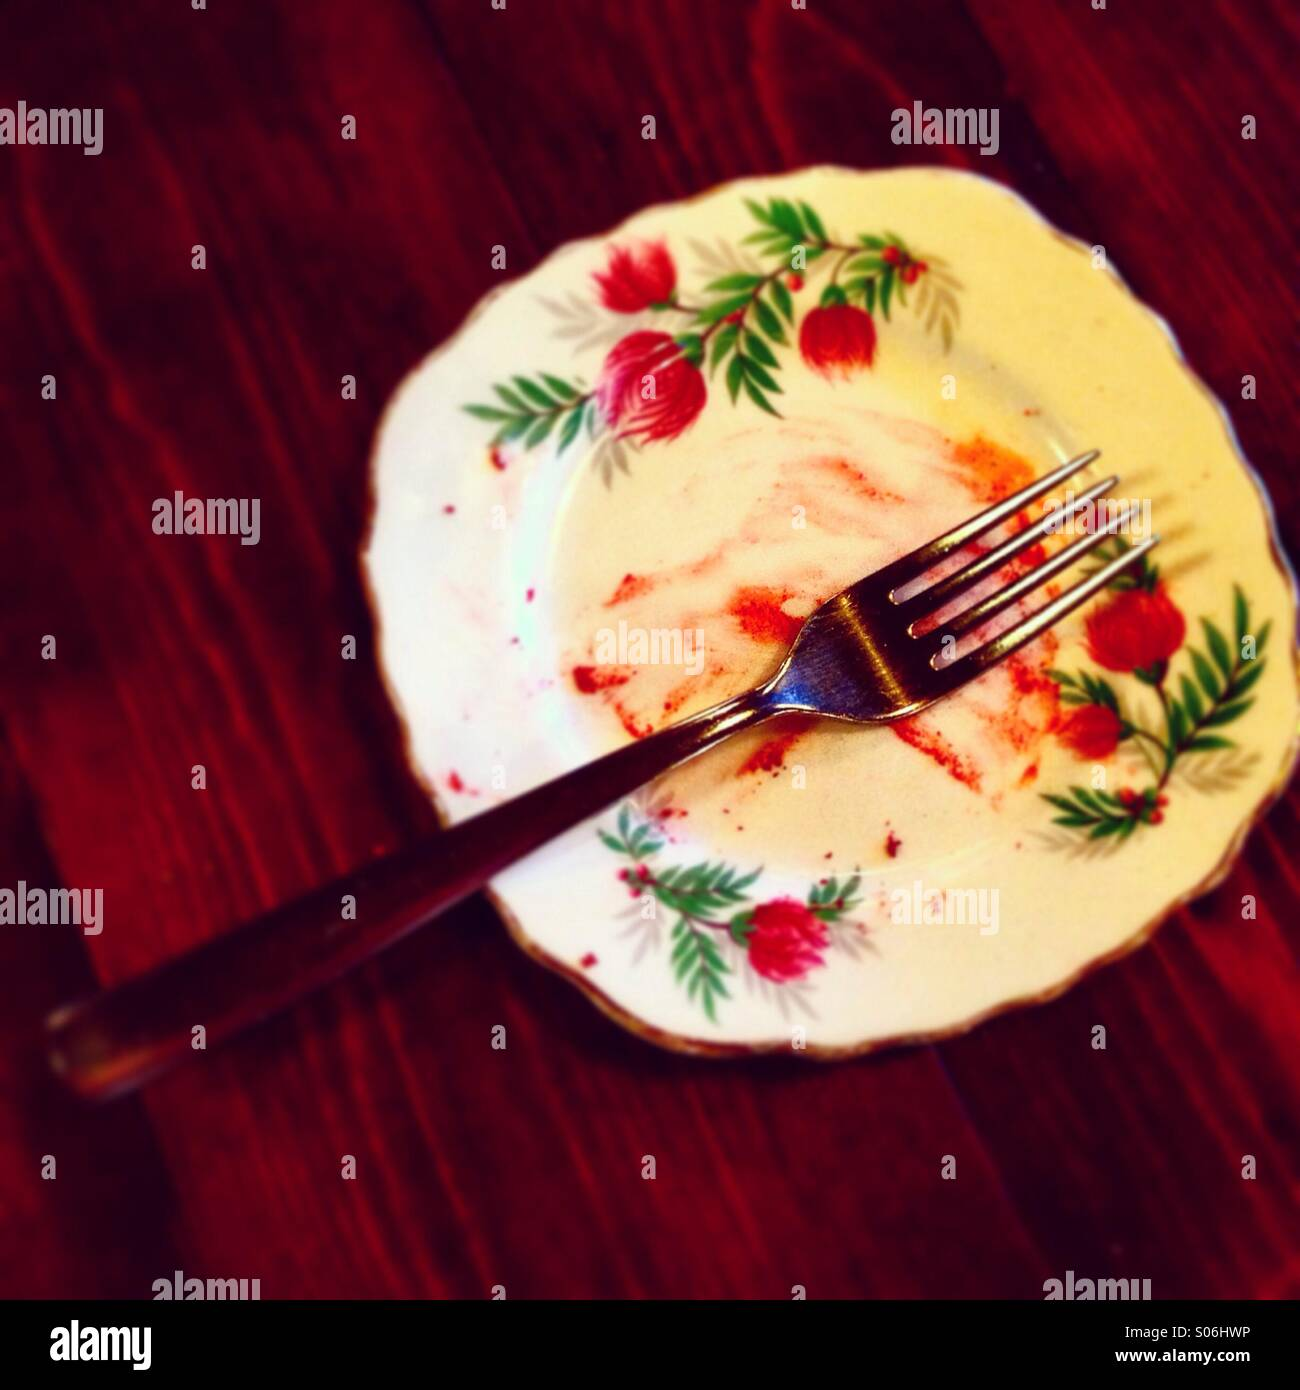 Dirty plate - Stock Image